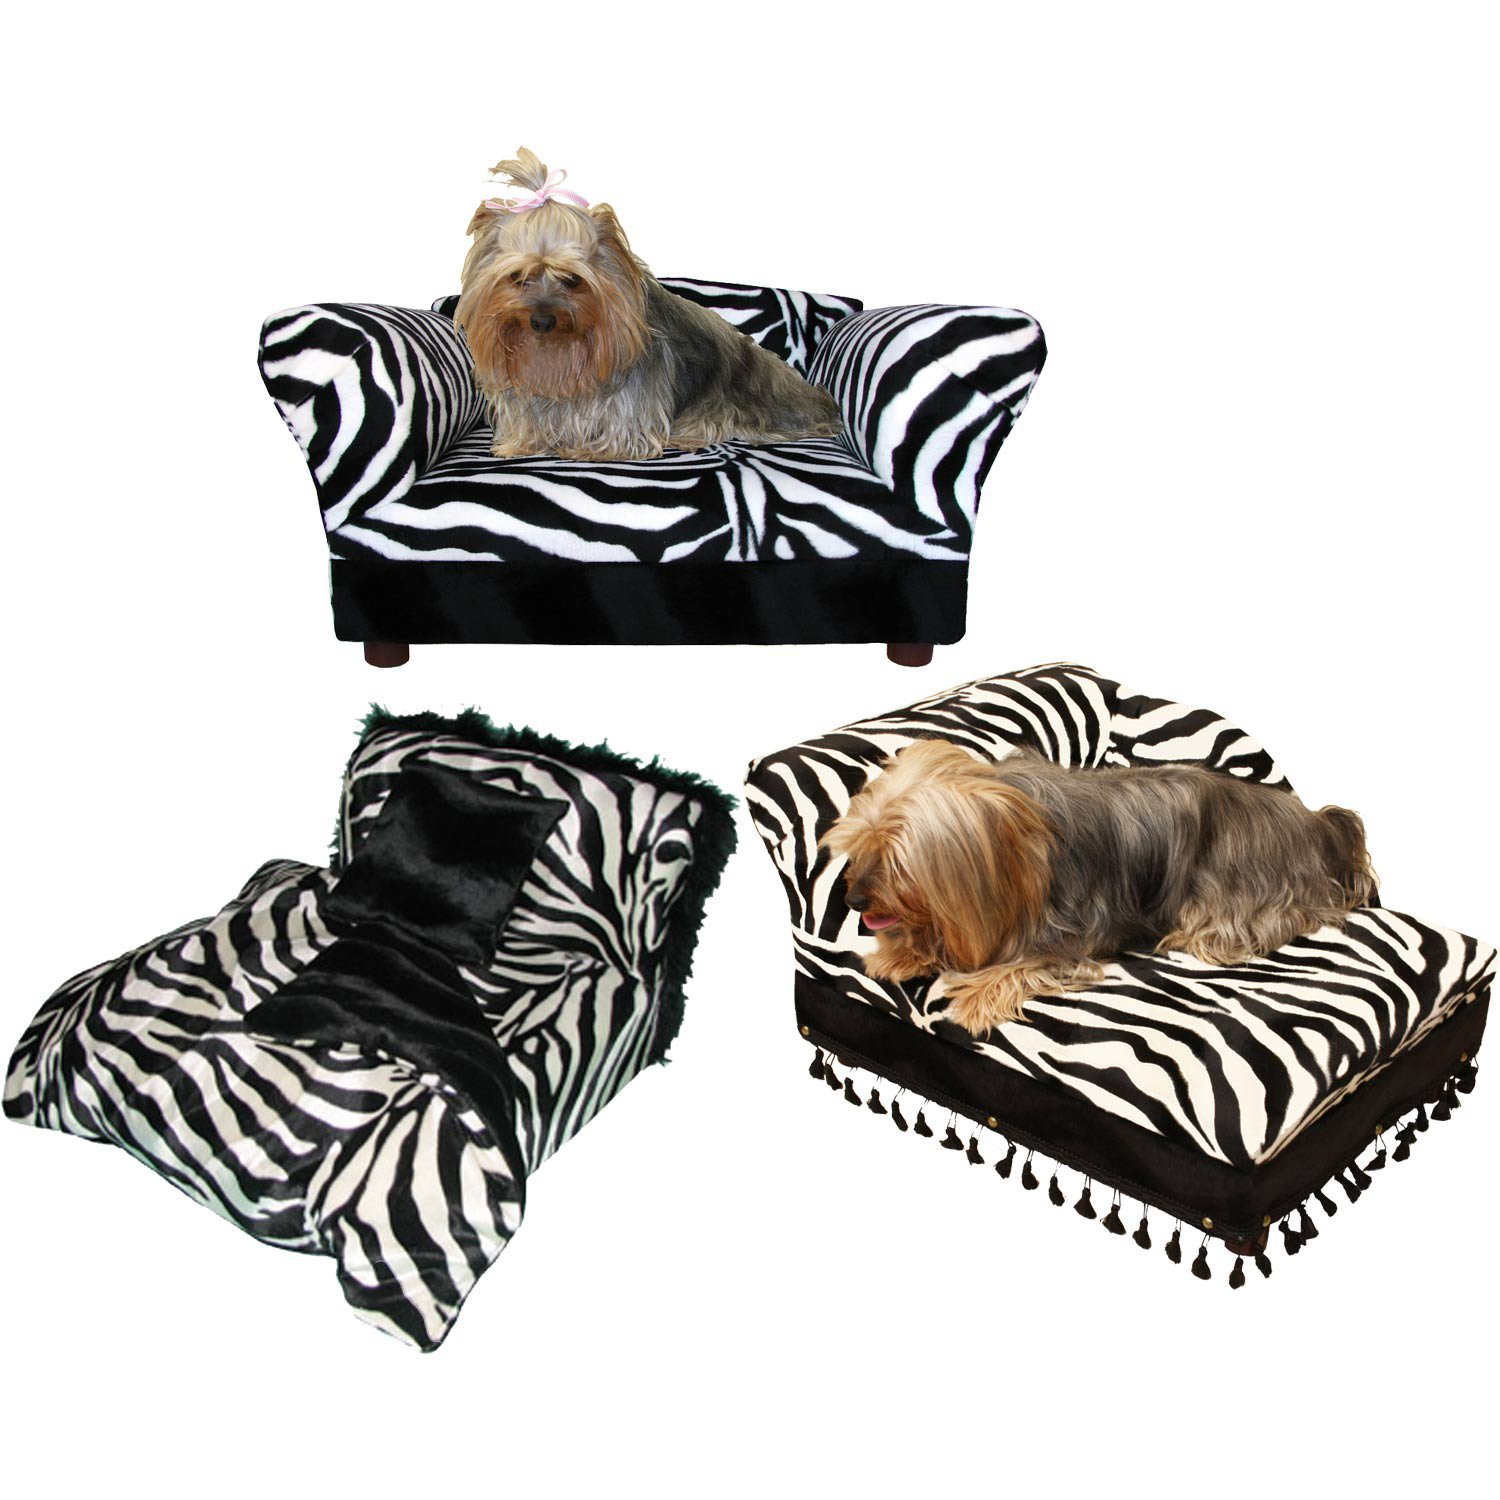 Fantasy Furniture 3 pcs Pet Set; Sofa, Chaise and Bed Zebra Print